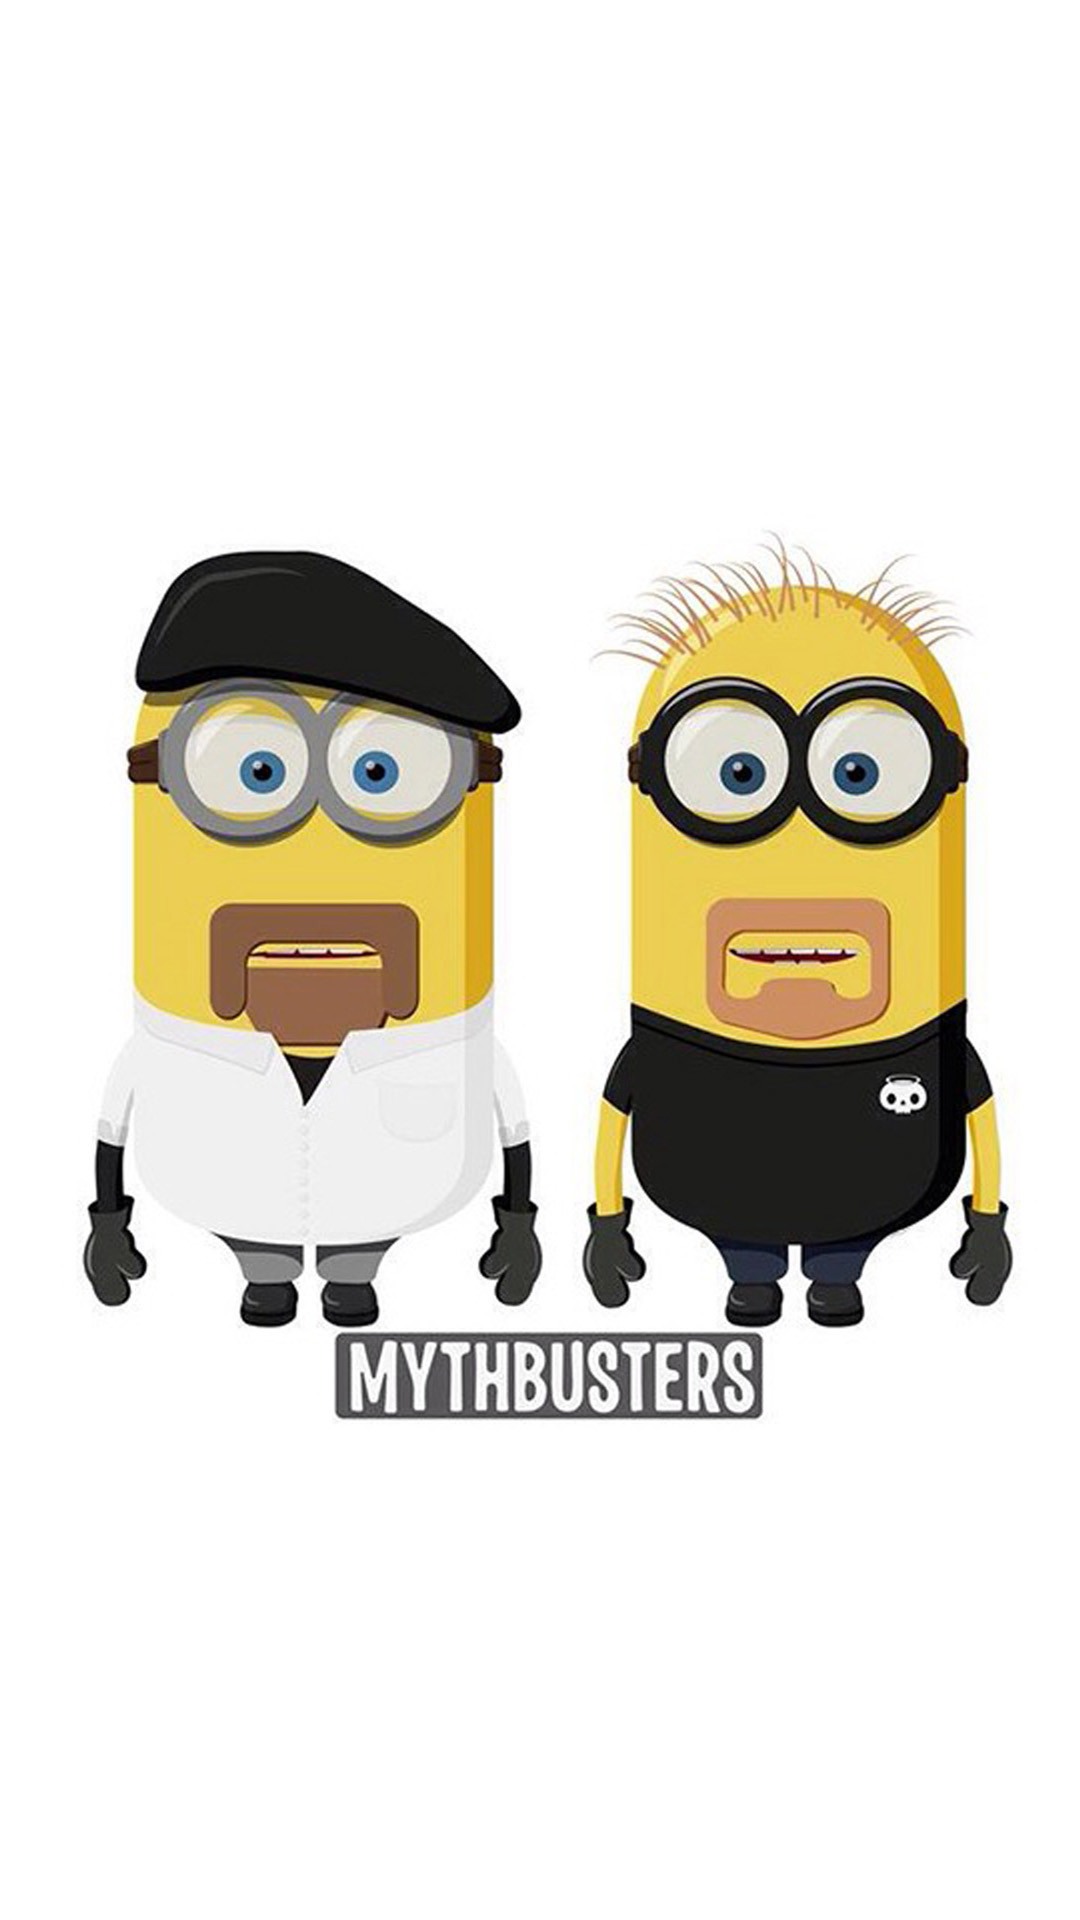 1080x1920 Mythbusters Minions Wallpapers for Galaxy S5